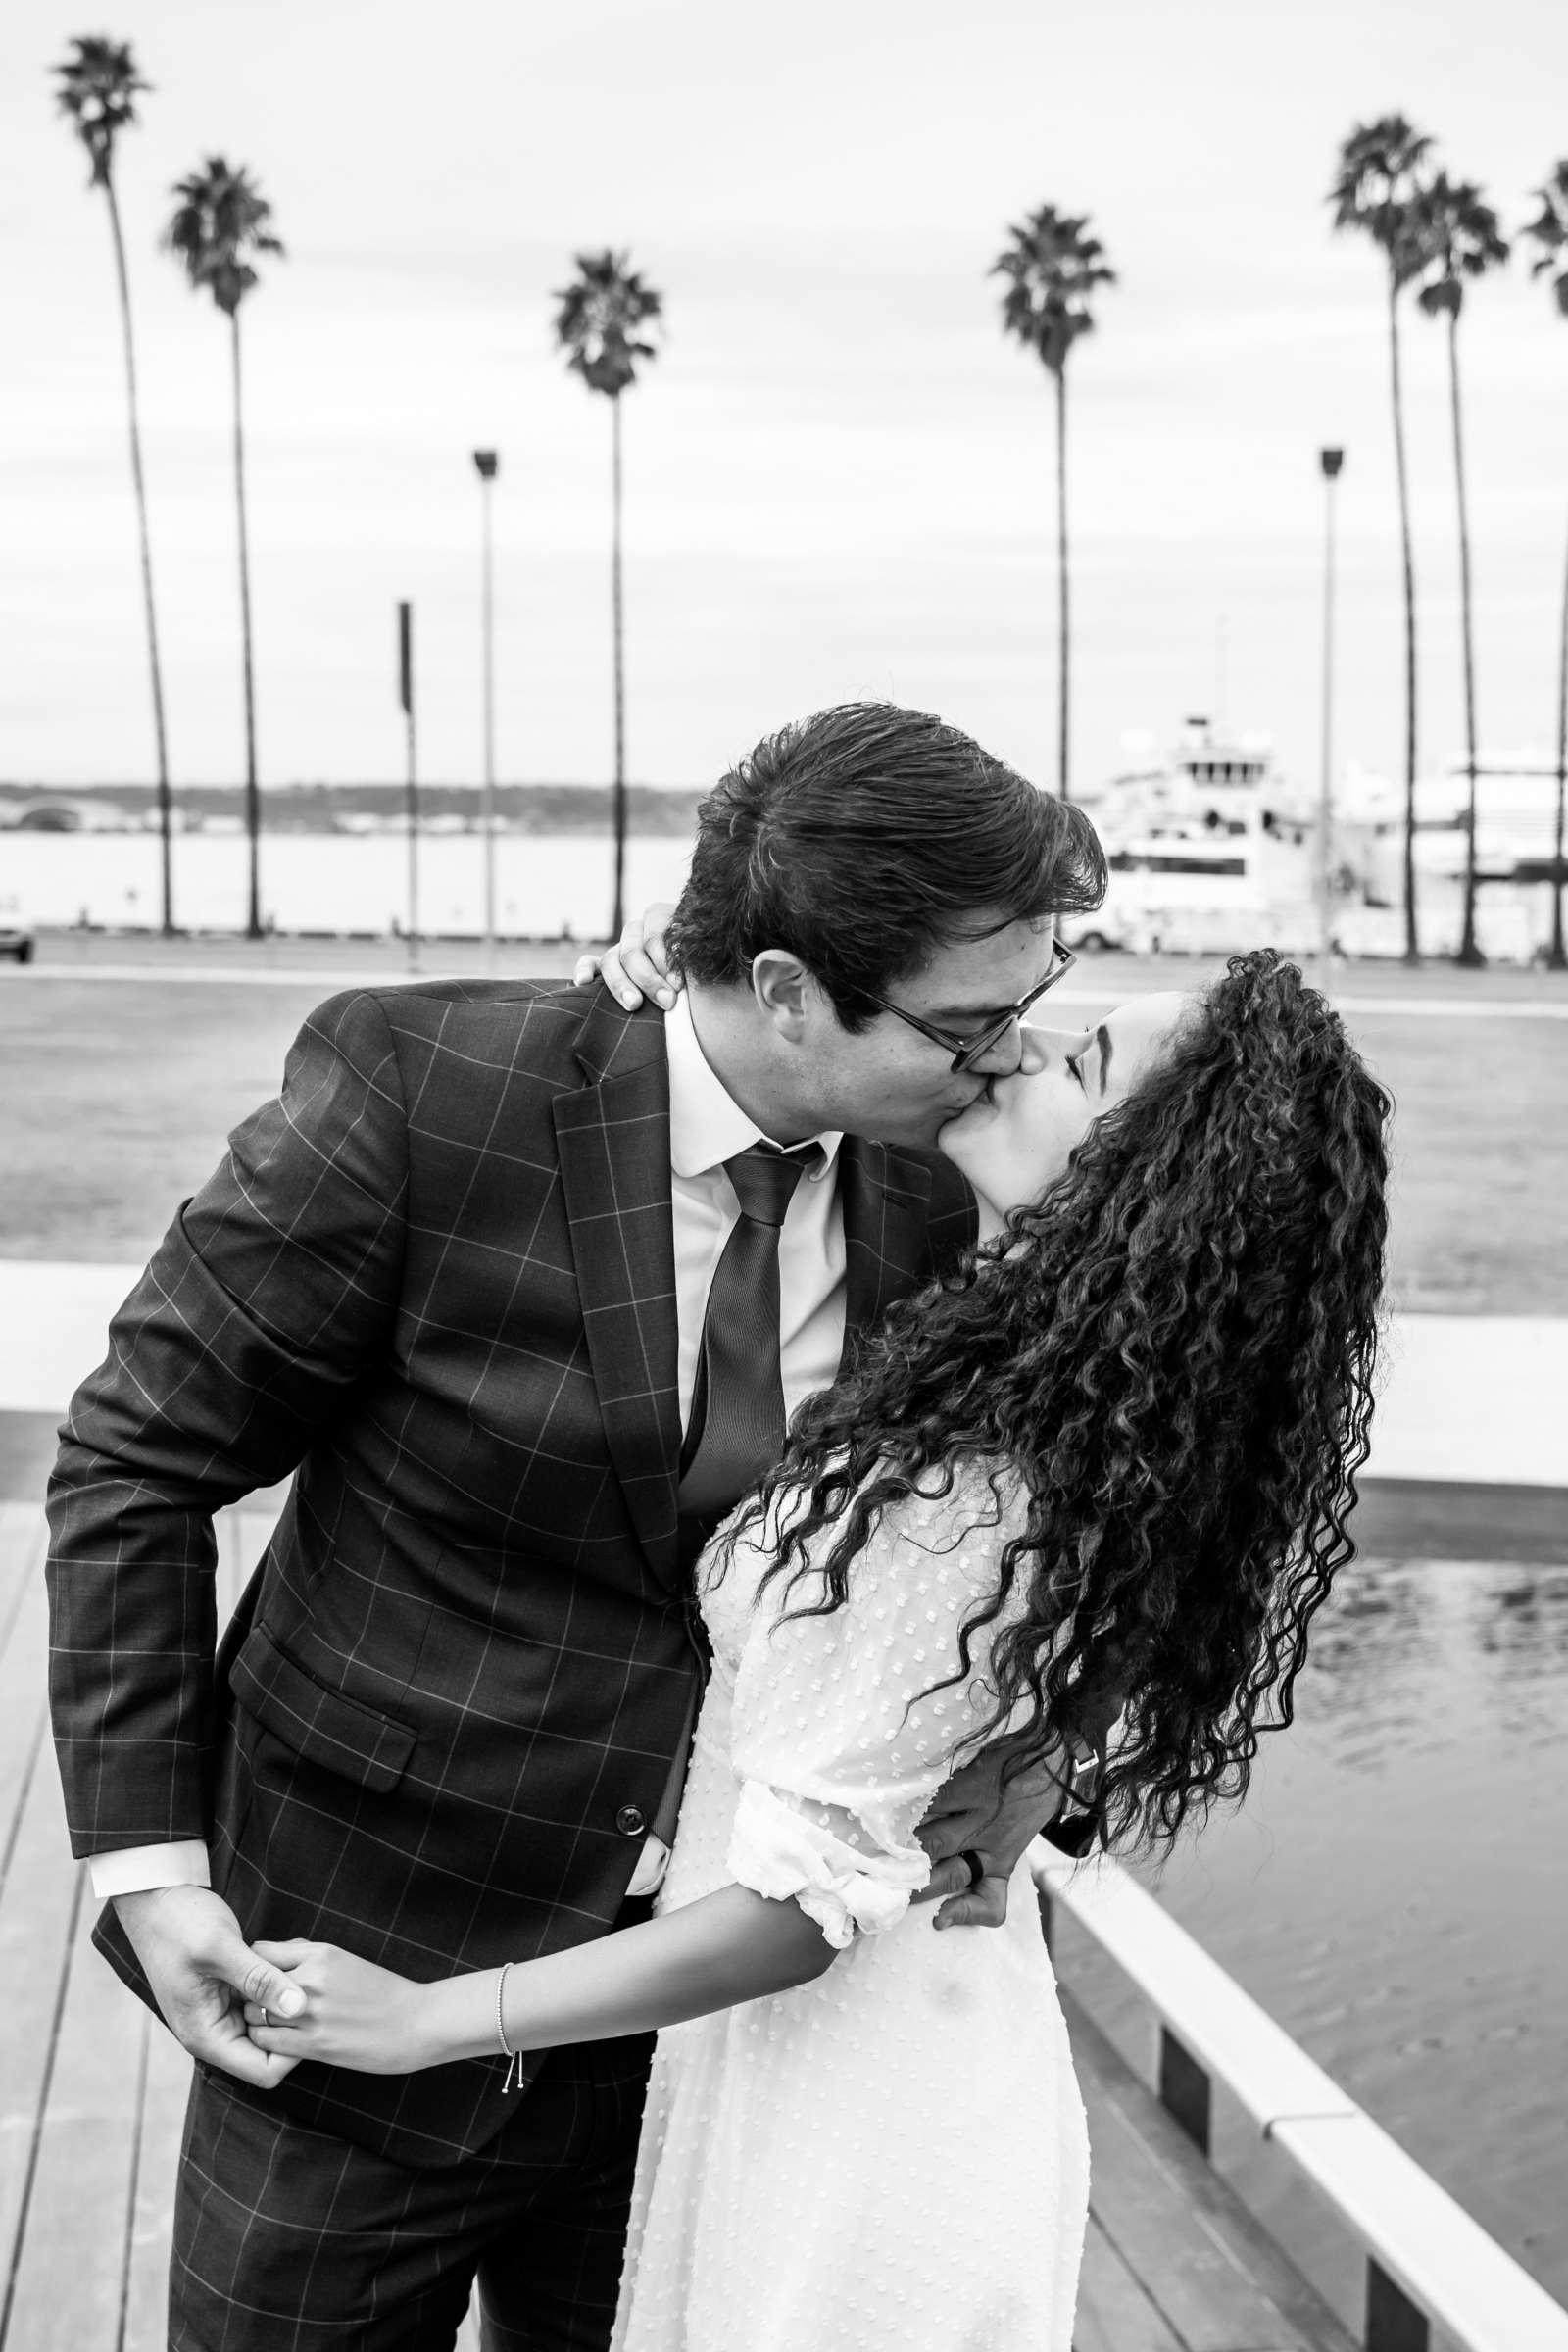 San Diego Courthouse Event, Gabriela and Peter Wedding Event Photo #622823 by True Photography